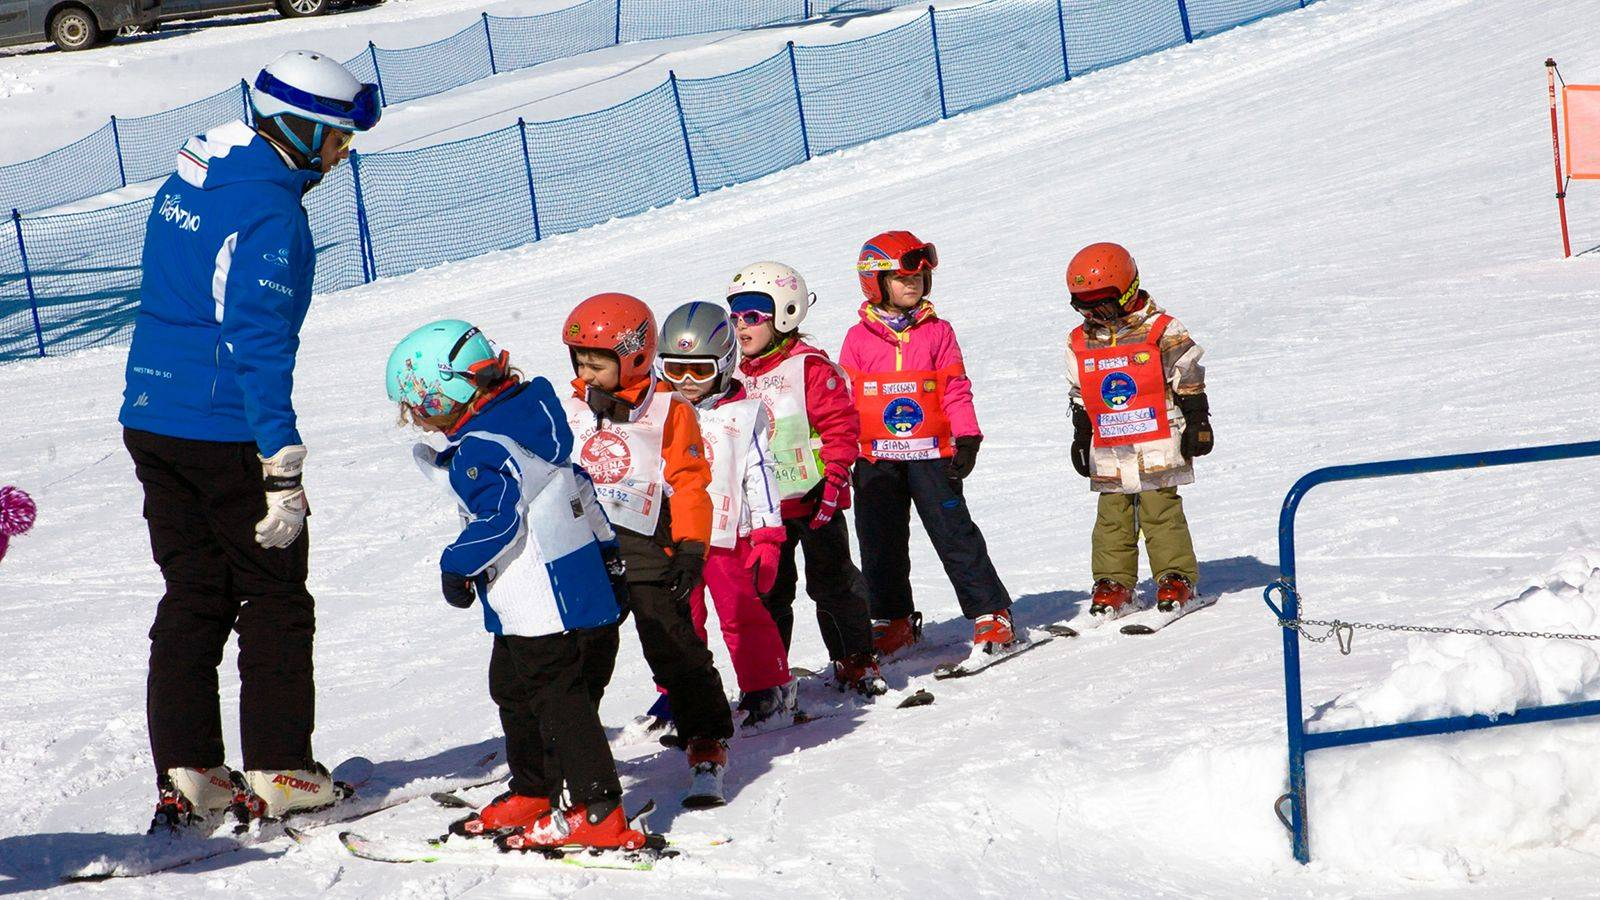 A group of children during the ski lessons at Passo San Pellegrino